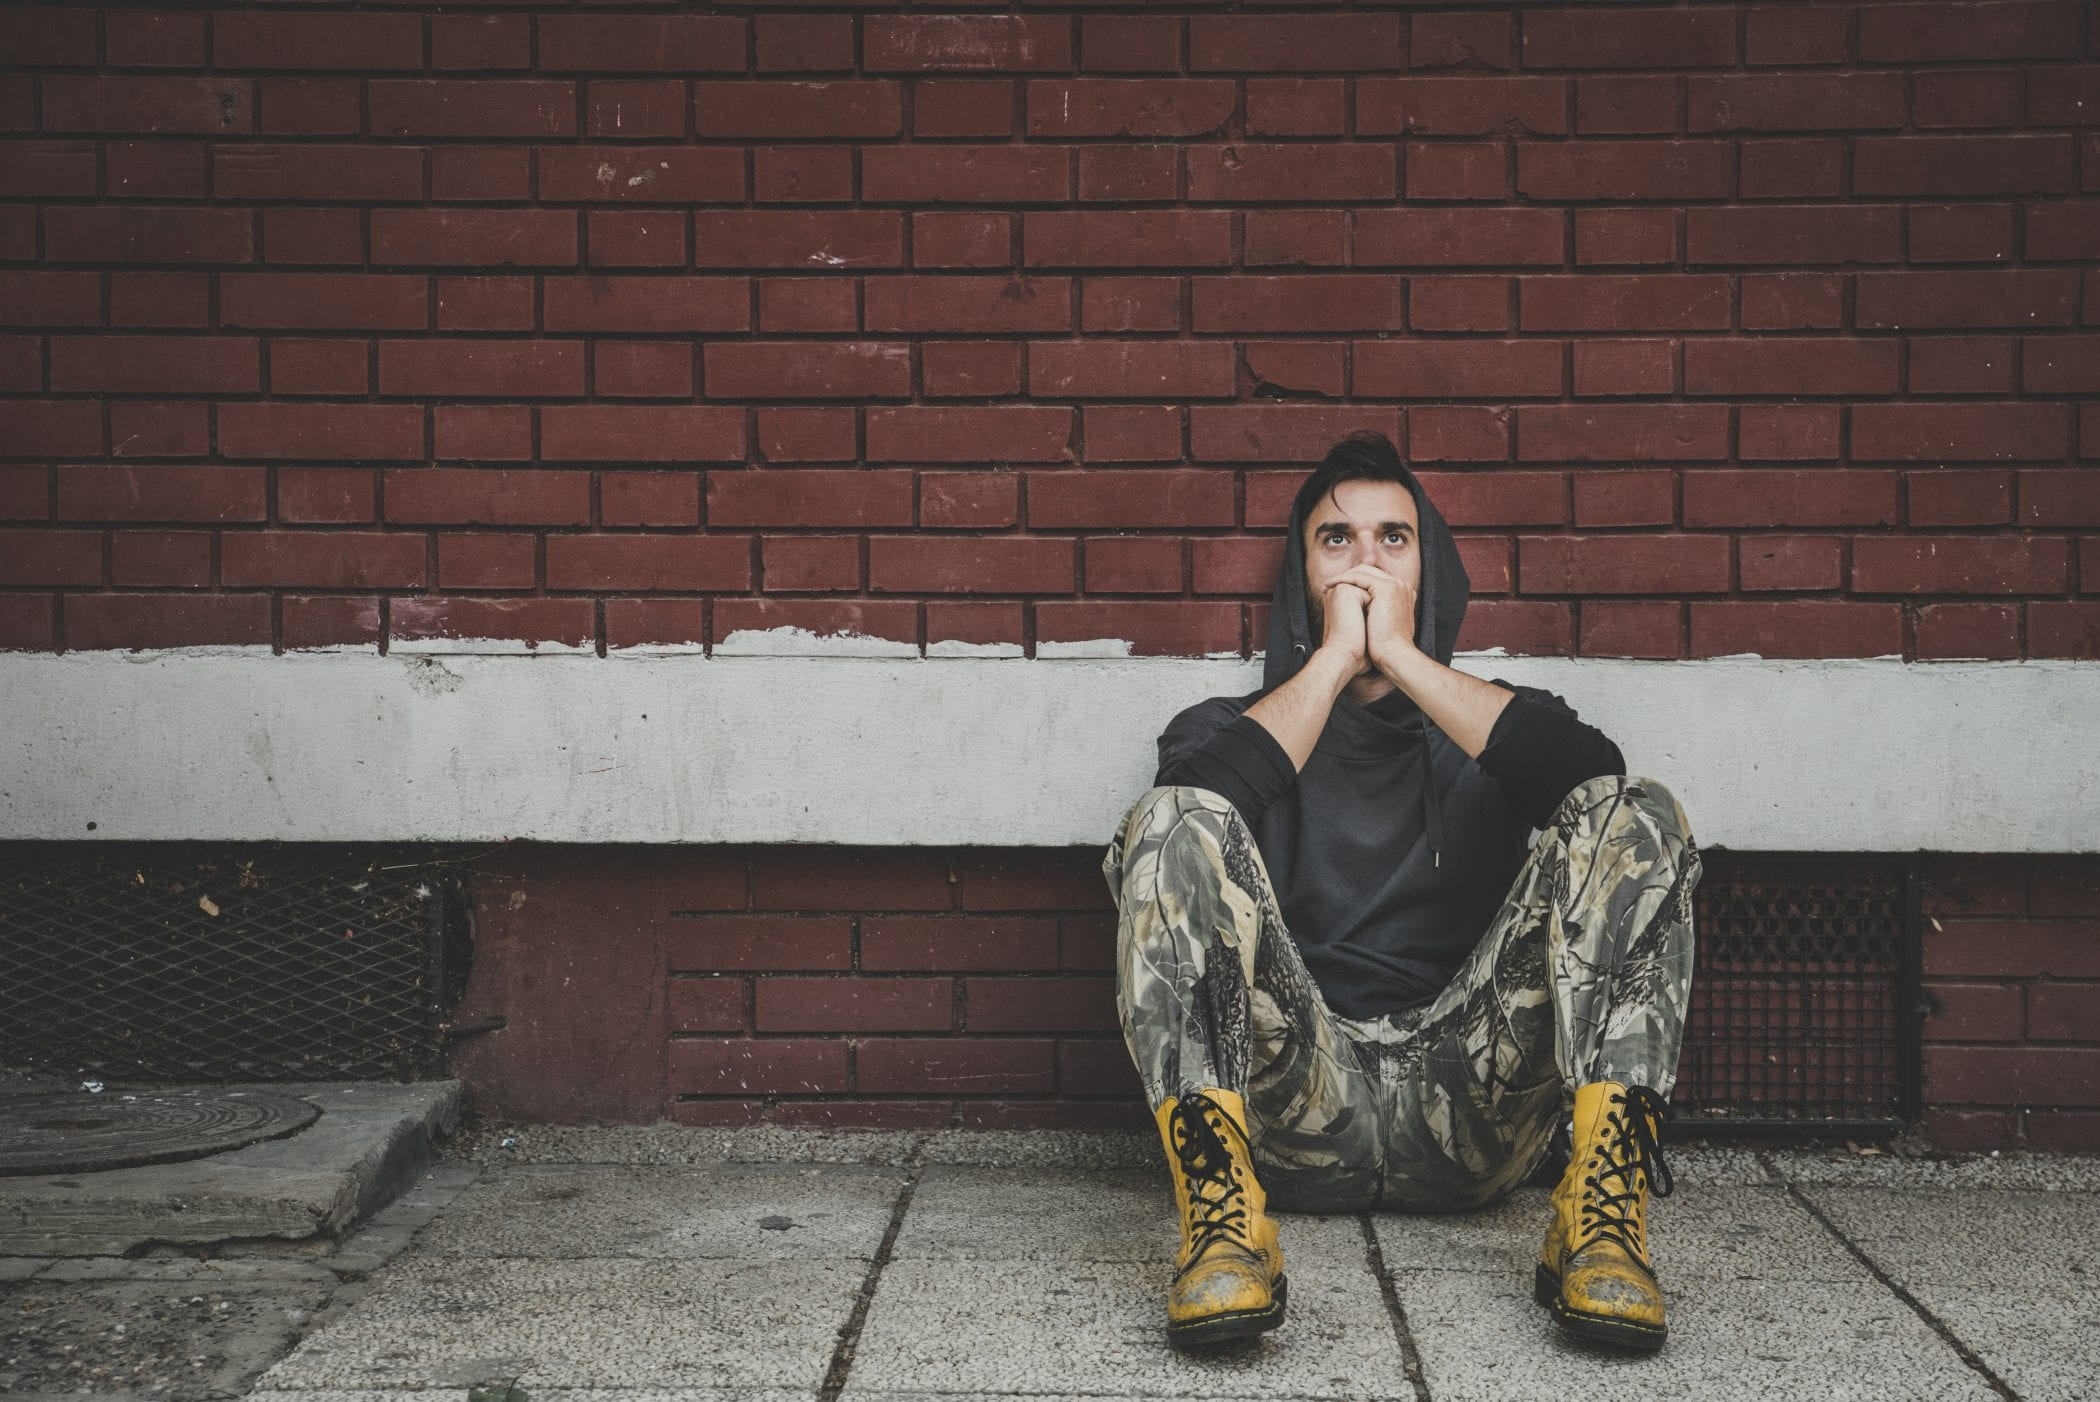 Homeless, Homeless man drug and alcohol addict sitting alone and depressed on the street leaning against a red brick building wall feeling anxious and lonely, social documentary concept